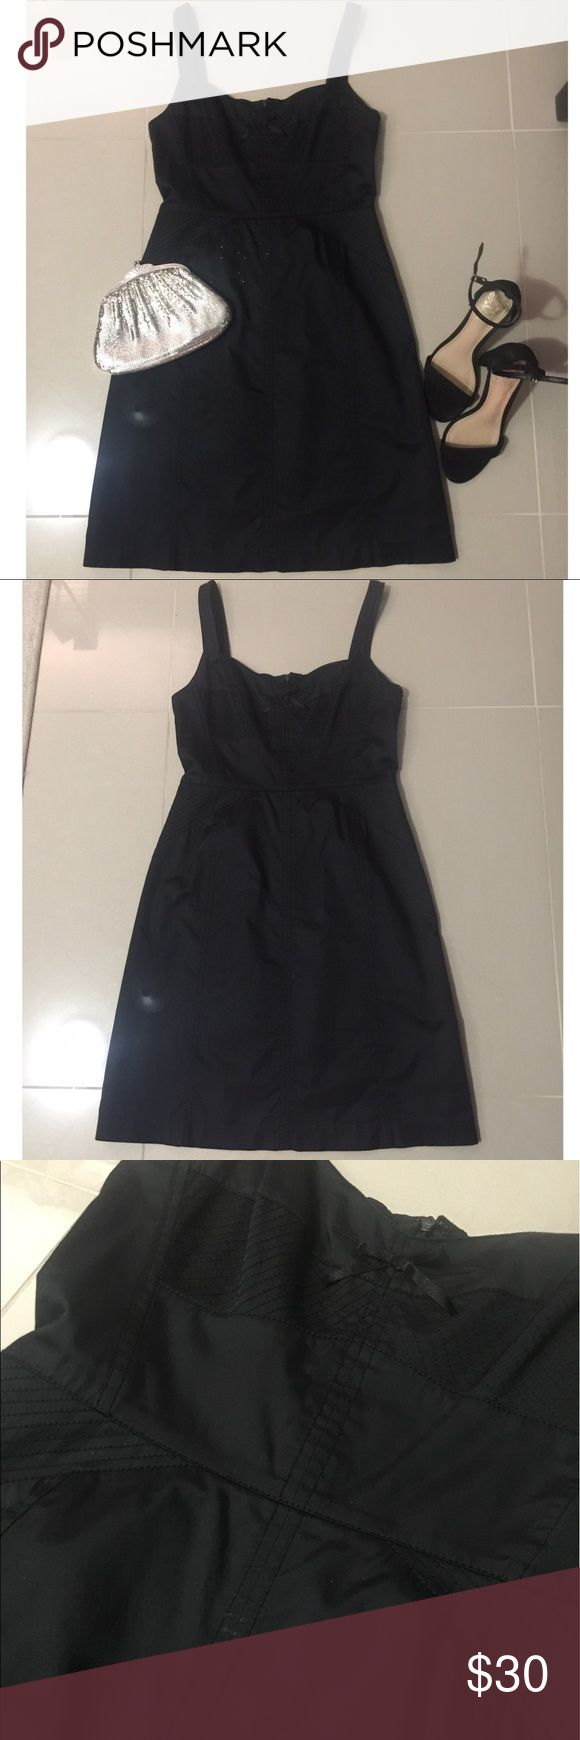 """Banana Republic cocktail dress Sexy Banana Republic cocktail dress. It's a true size 4, and worn less than 5 times. Beautiful stitching detail on front and back. Bodice is fitted so it gives you a little push-up effect. Back zip closure. I'm 5'3"""", and it the hem hits me a couple inches above the knee. Perfect for a wedding or it can be worn with a blazer for the office. 🎱🖤 Banana Republic Dresses Mini"""